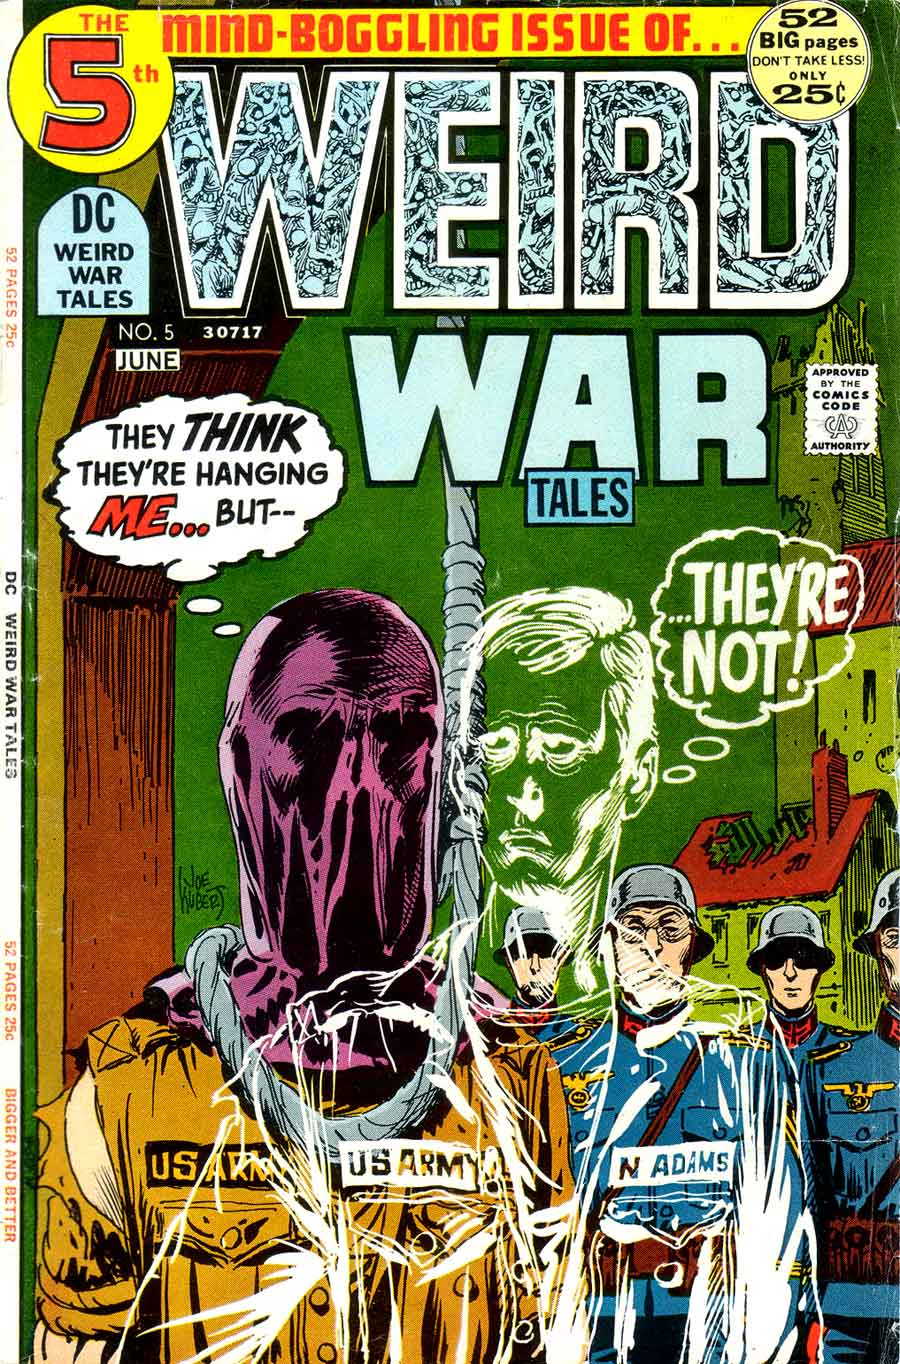 Weird War Tales v1 #5 dc bronze age comic book cover art by Joe Kubert